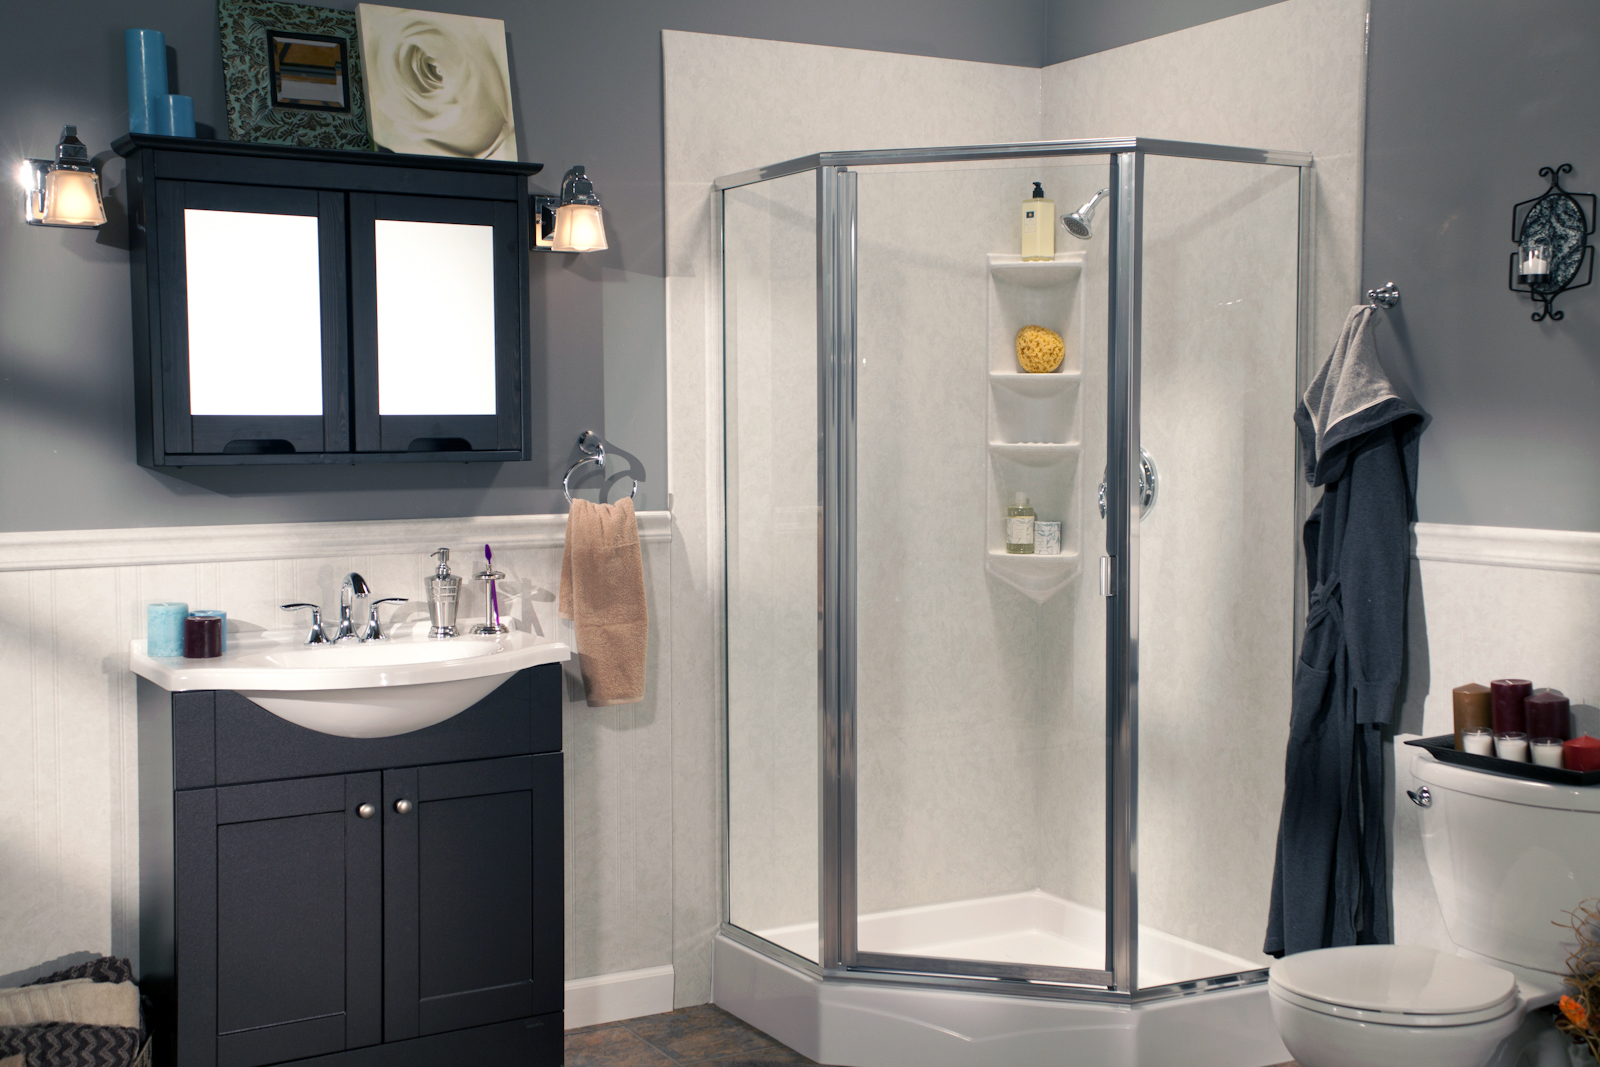 One of the most common renovation projects, a bathroom remodel can also be done in just 1 day!